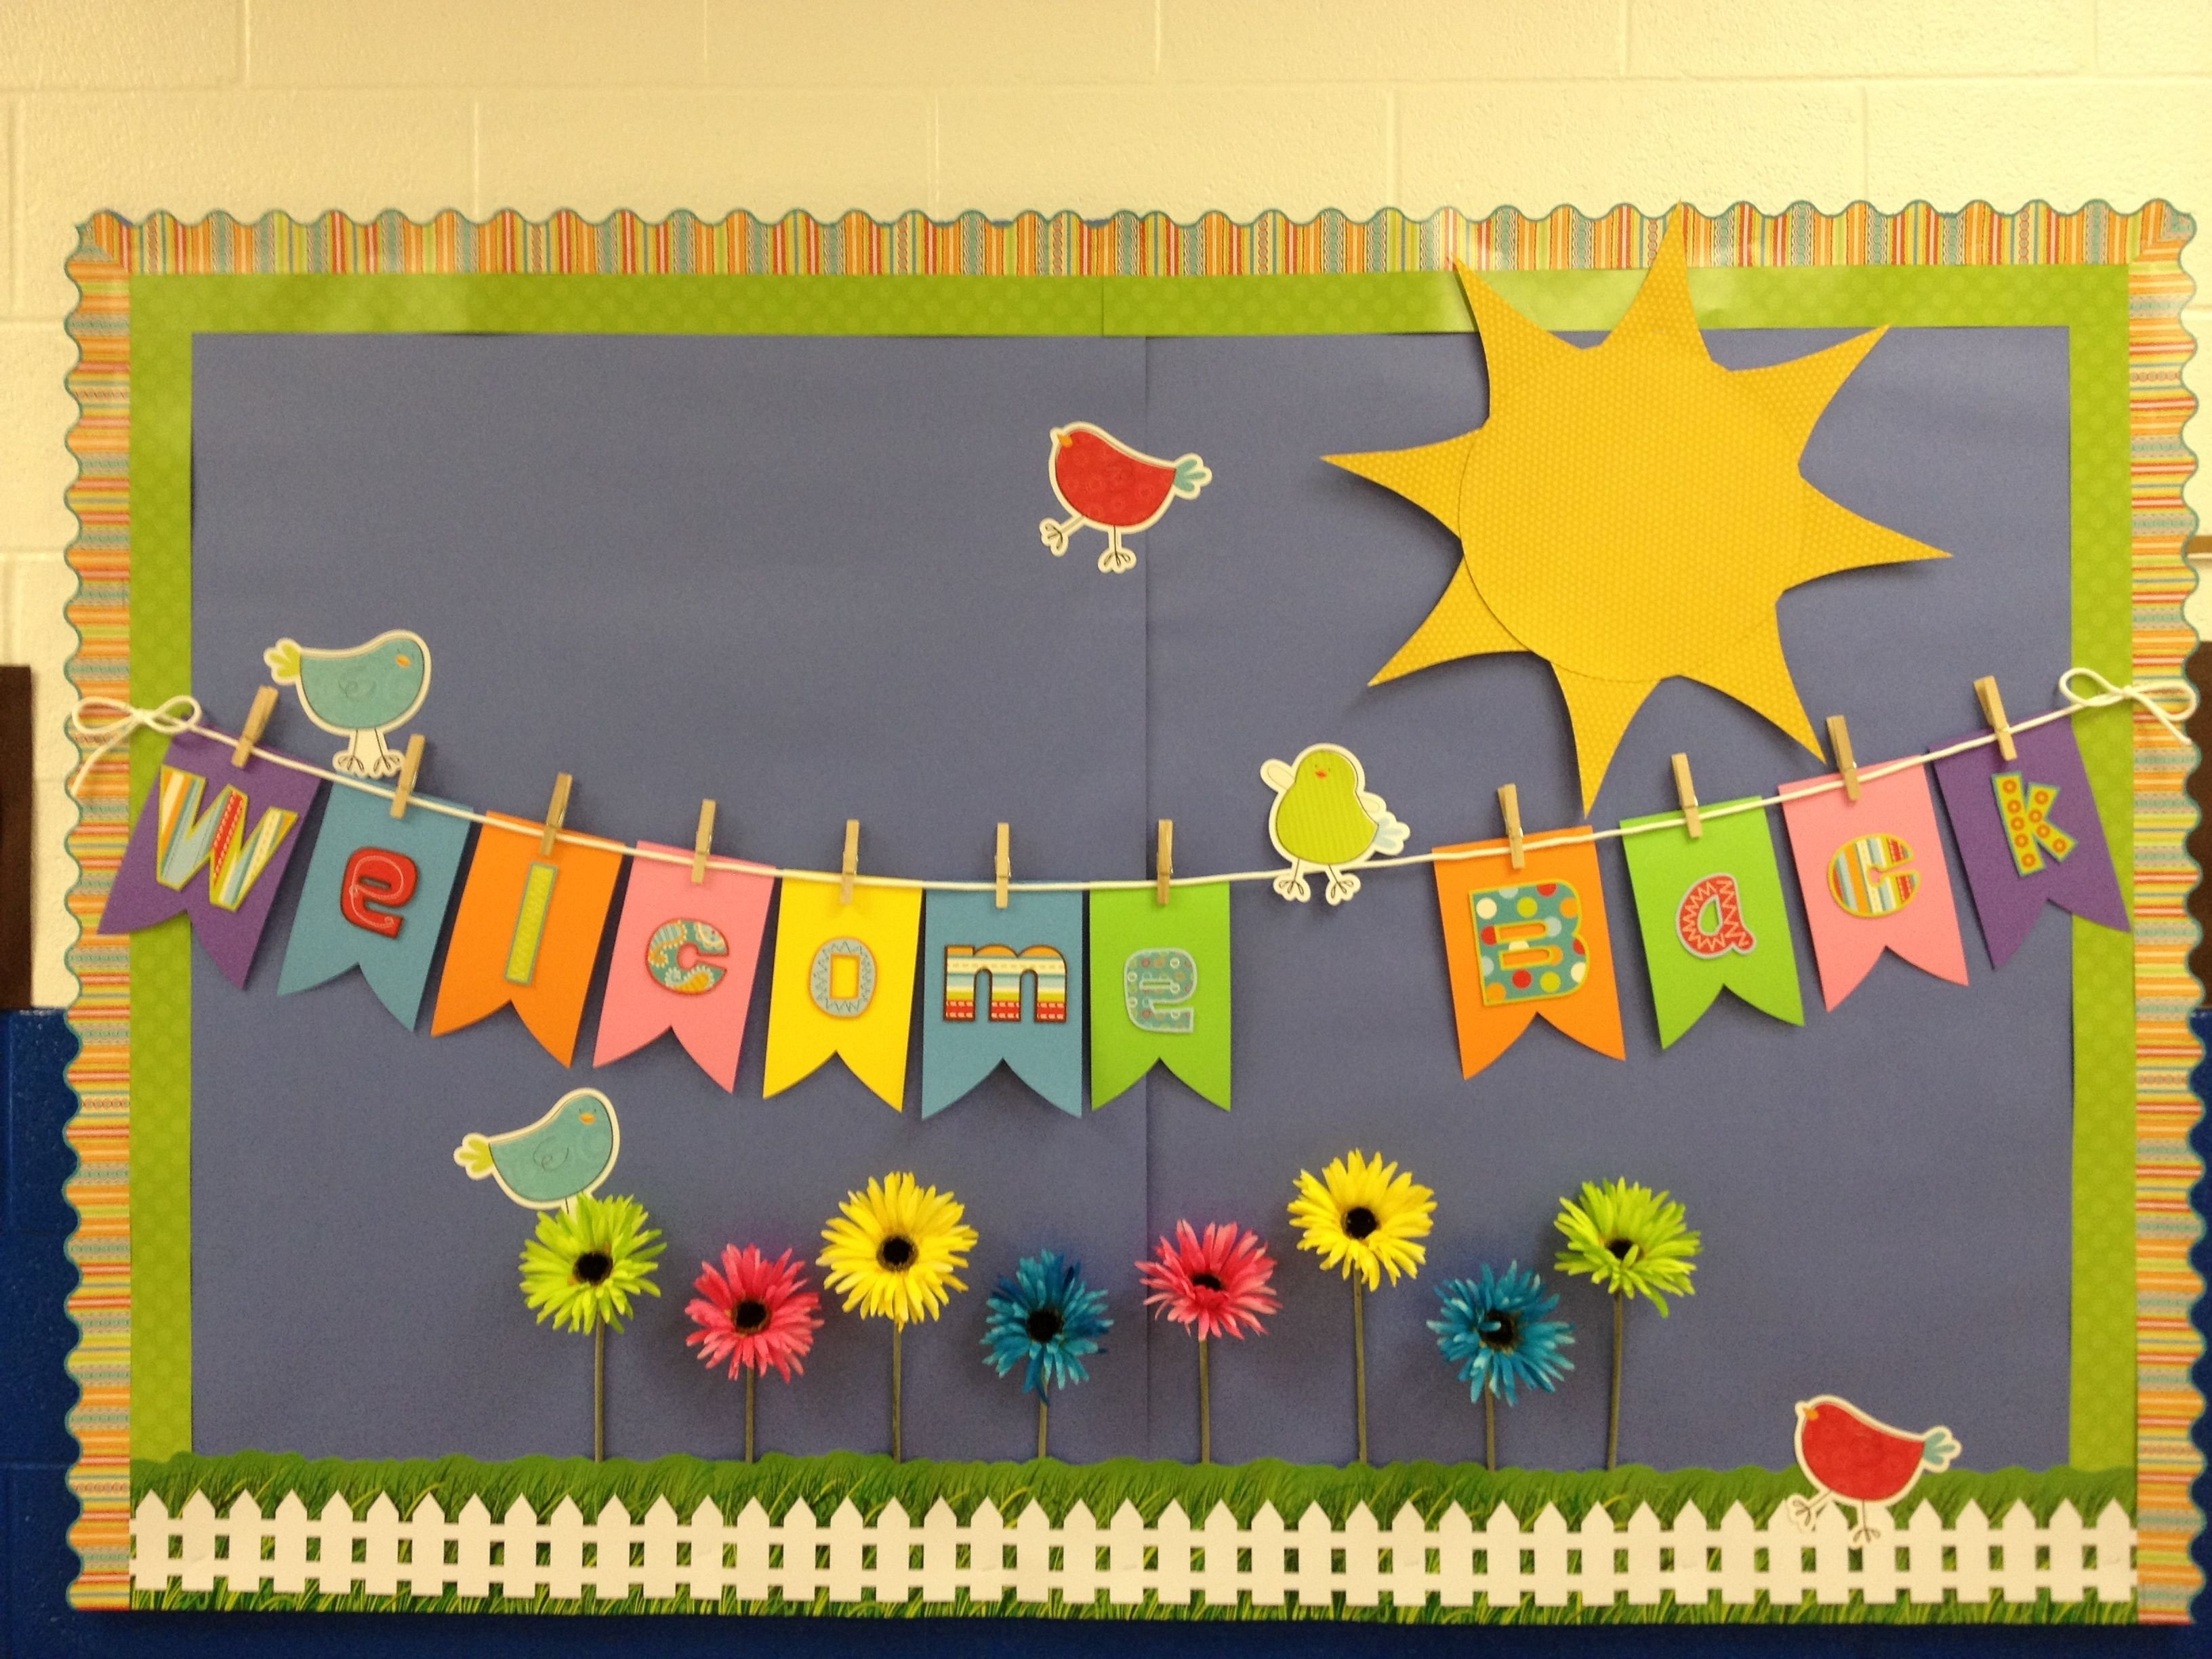 10 Ideal Beginning Of Year Bulletin Board Ideas spring theme welcome back to school bulletin boards ideas bing 10 2020